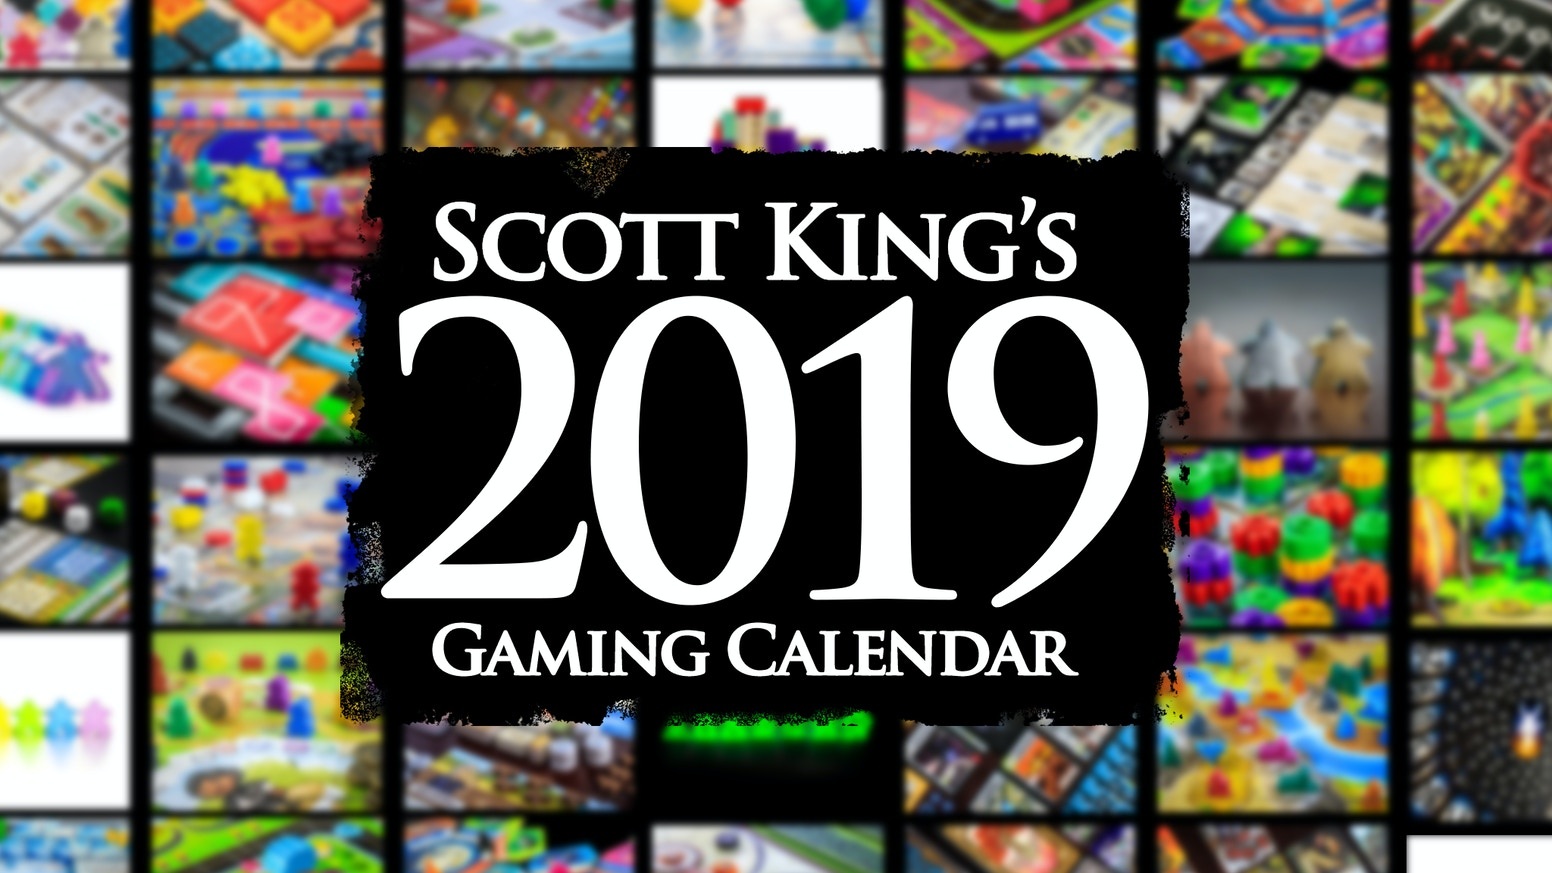 The 2019 Gaming Calendar!